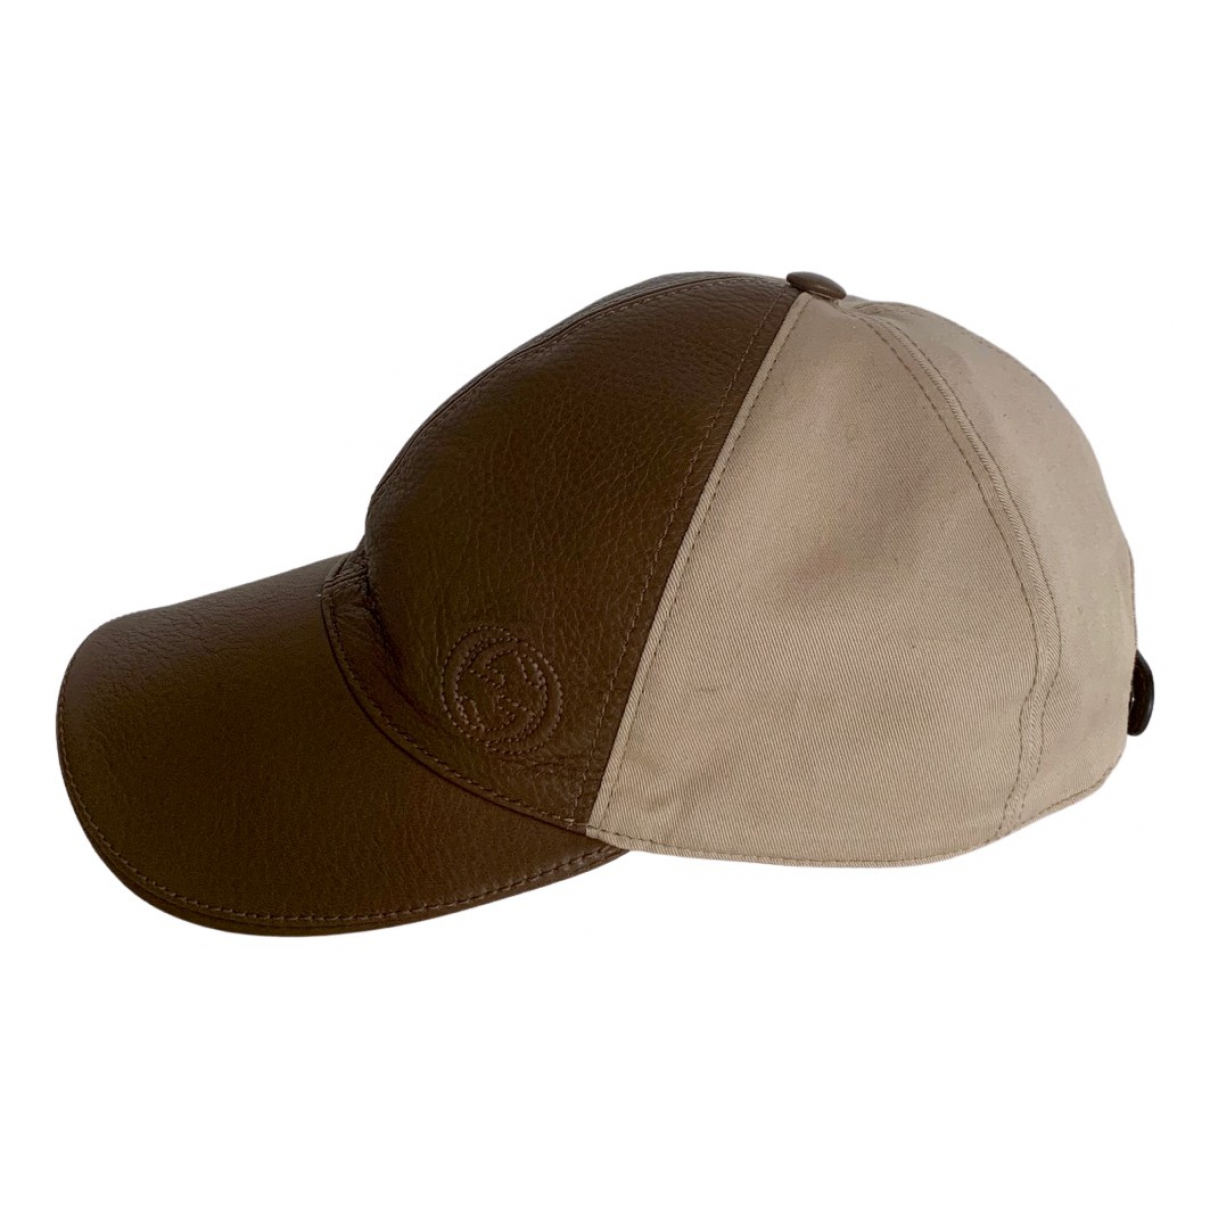 Gucci \N Brown Leather hat for Women S International